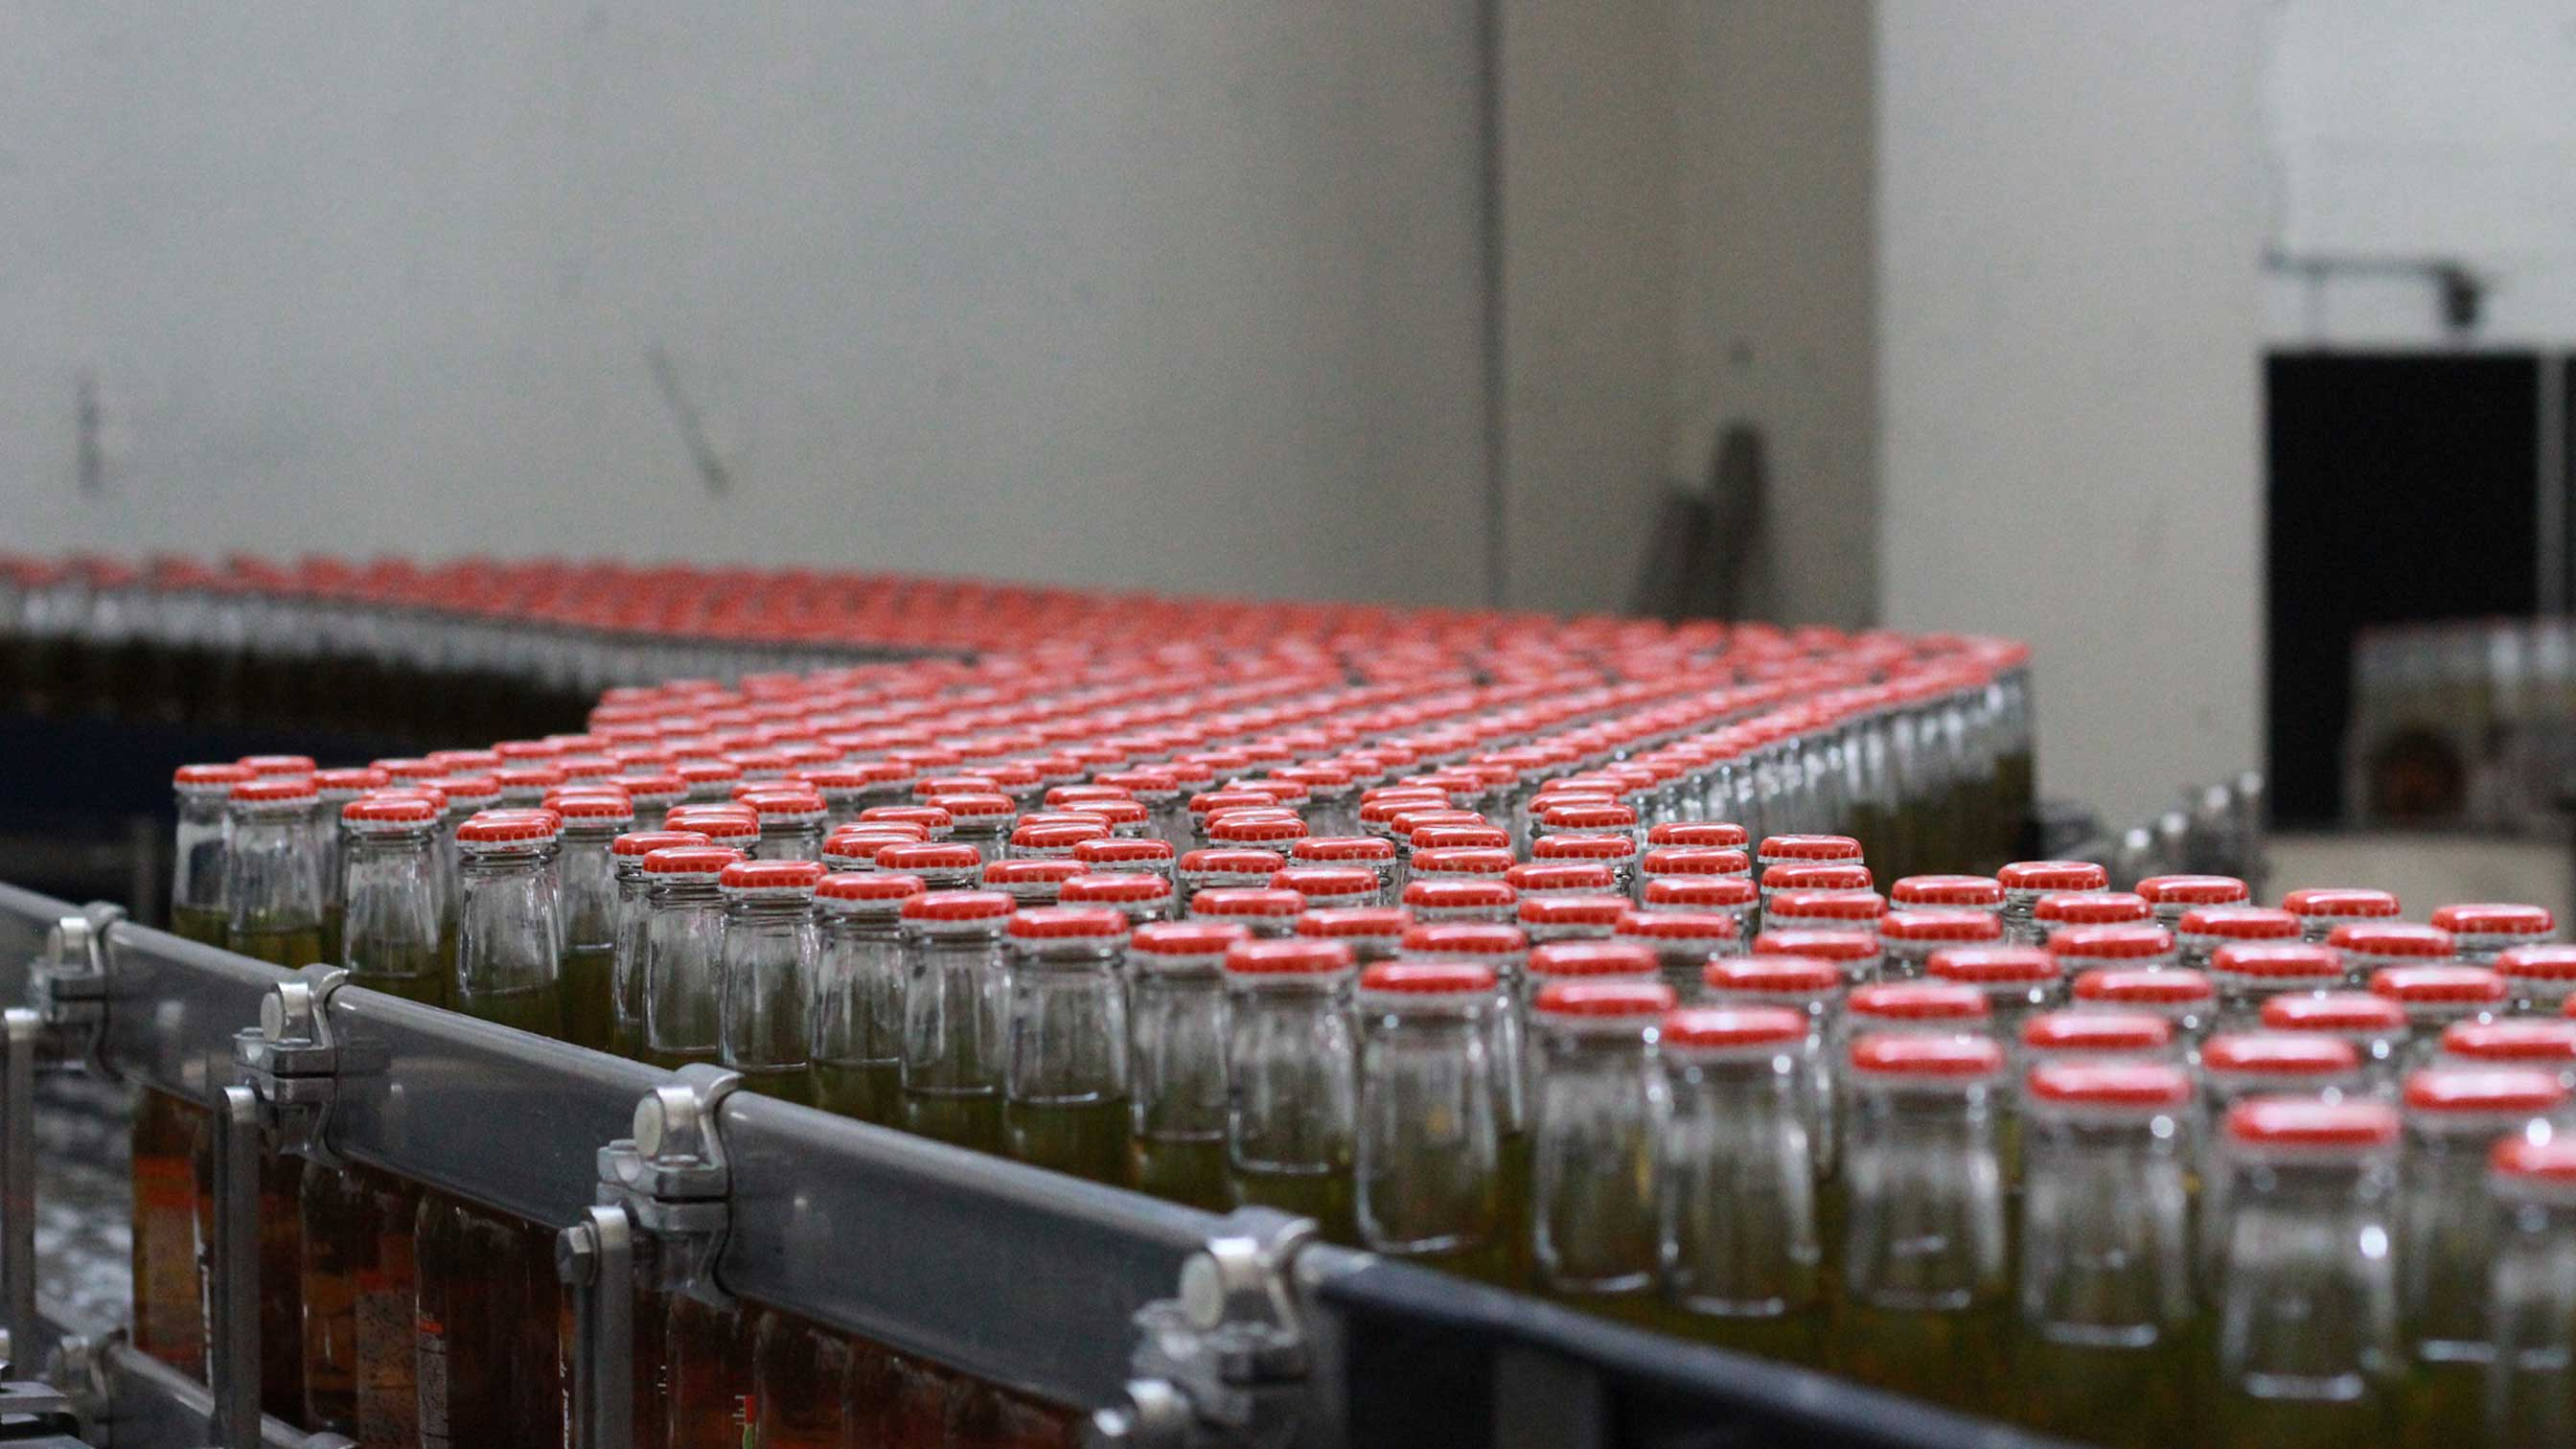 red-topped bottles on production line en masse